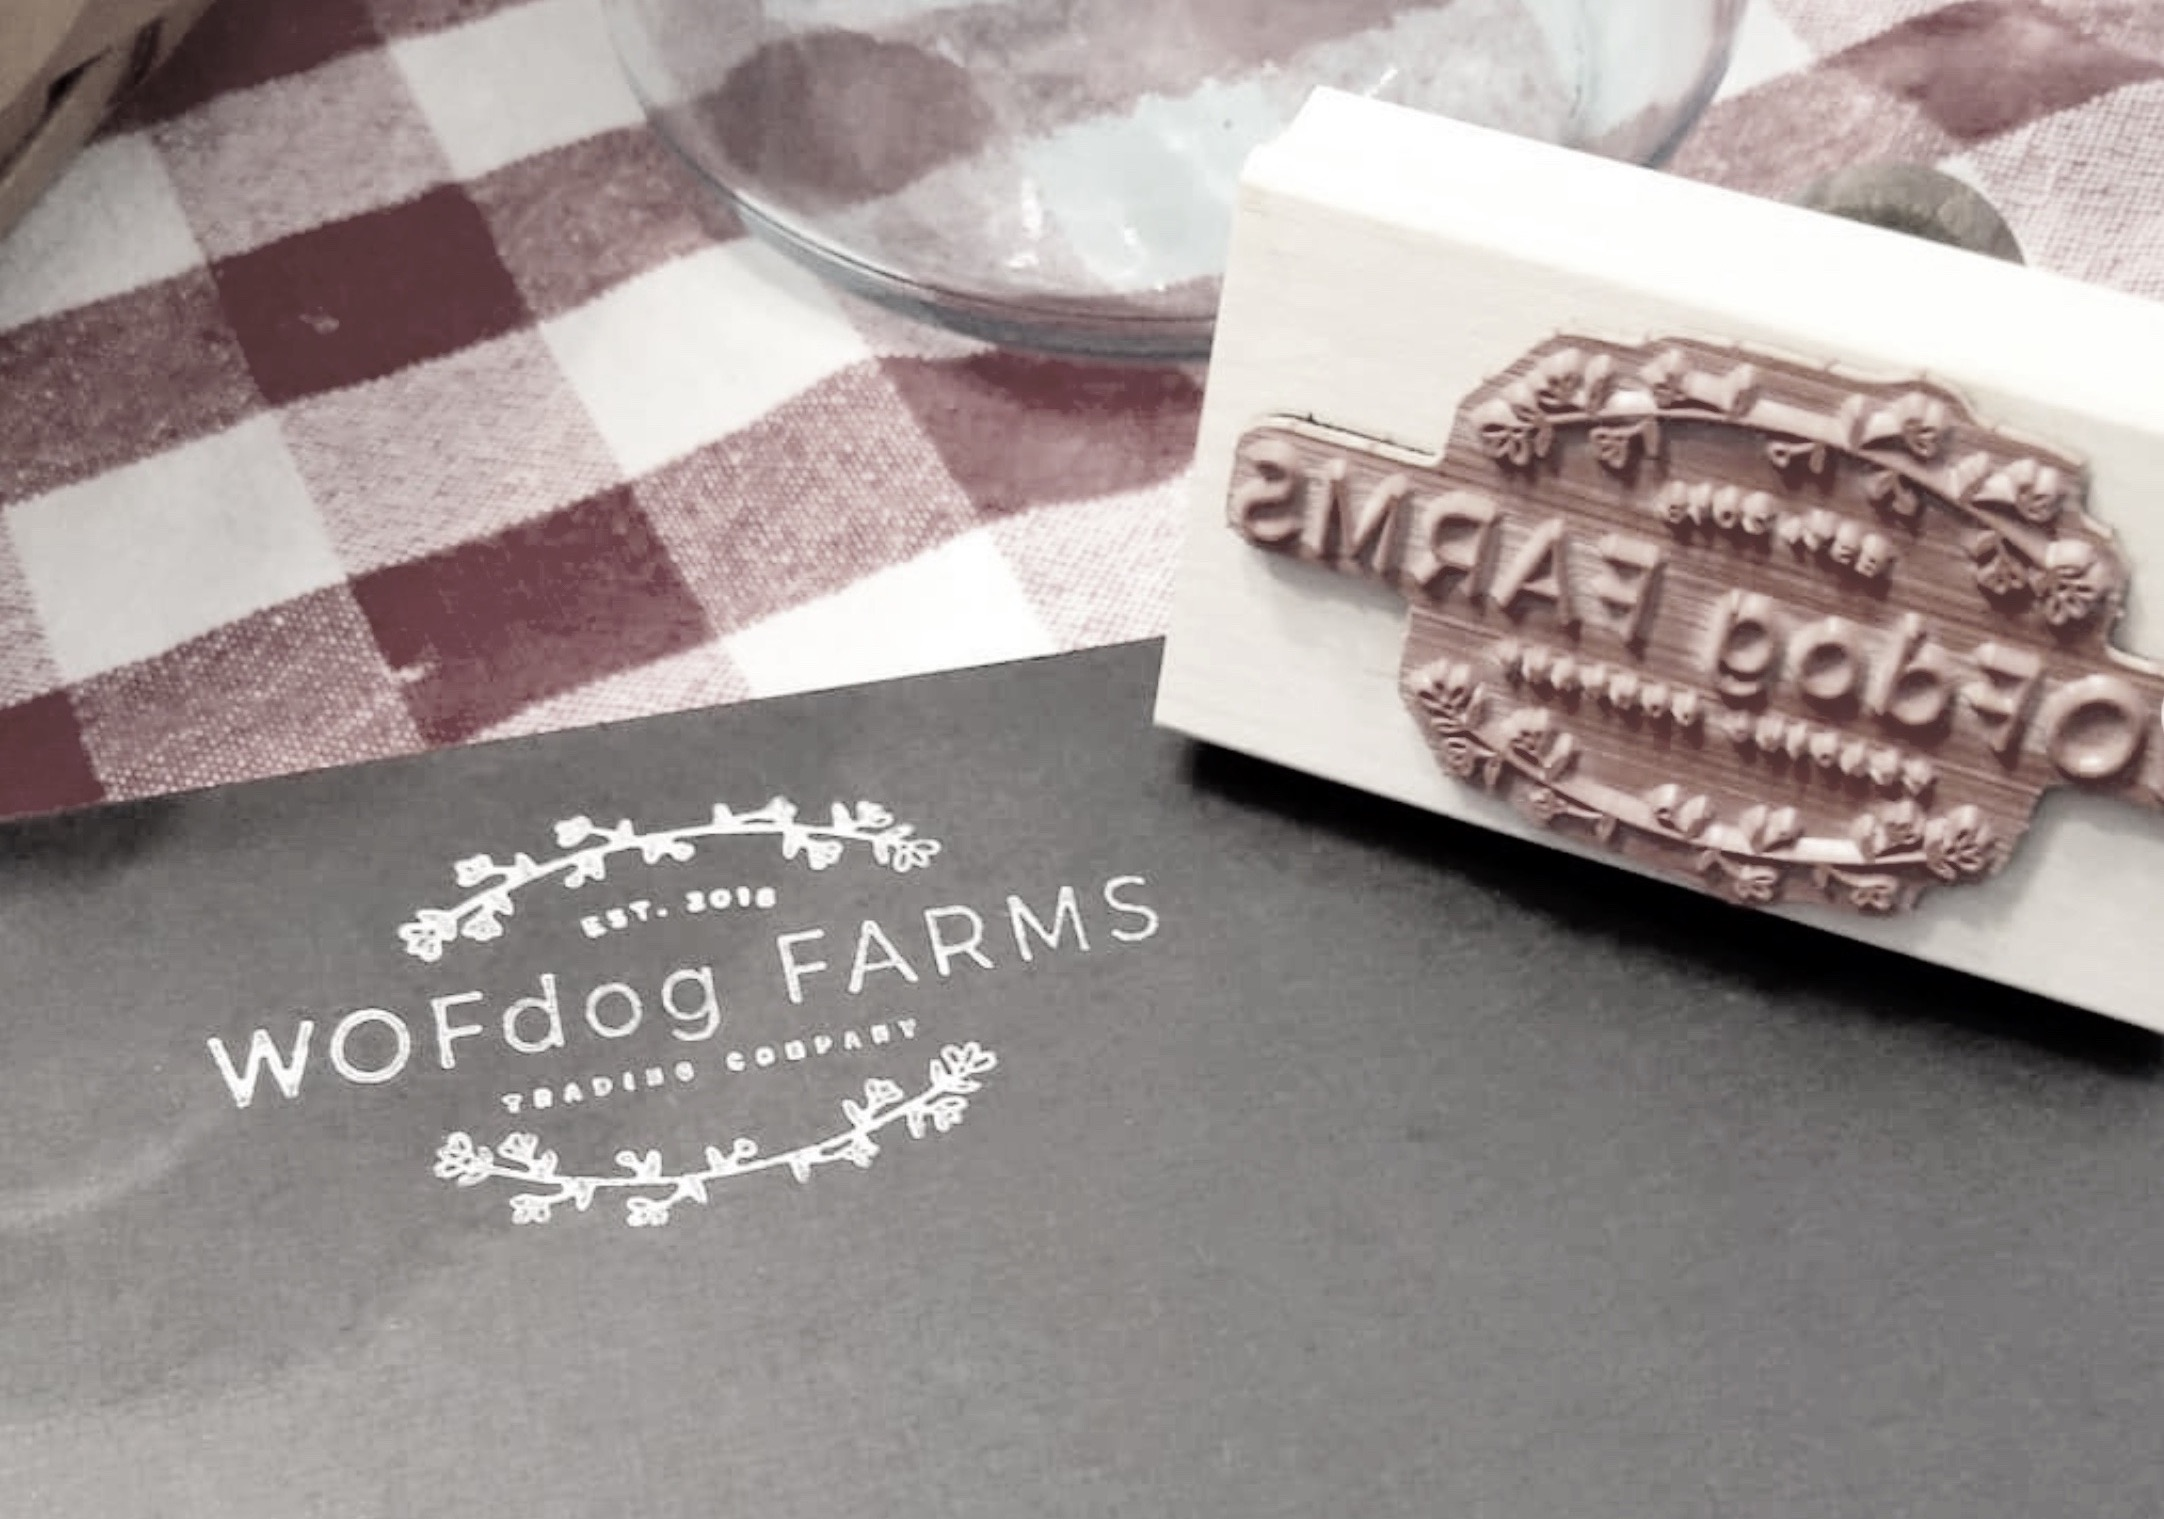 """""""Thank you @creatiate for our new #wofdogfarmstradingco logo stamp.  Now we can customize our packaging - and so much more - in style! """" ~ @ wofdogfarmstradingcompany"""